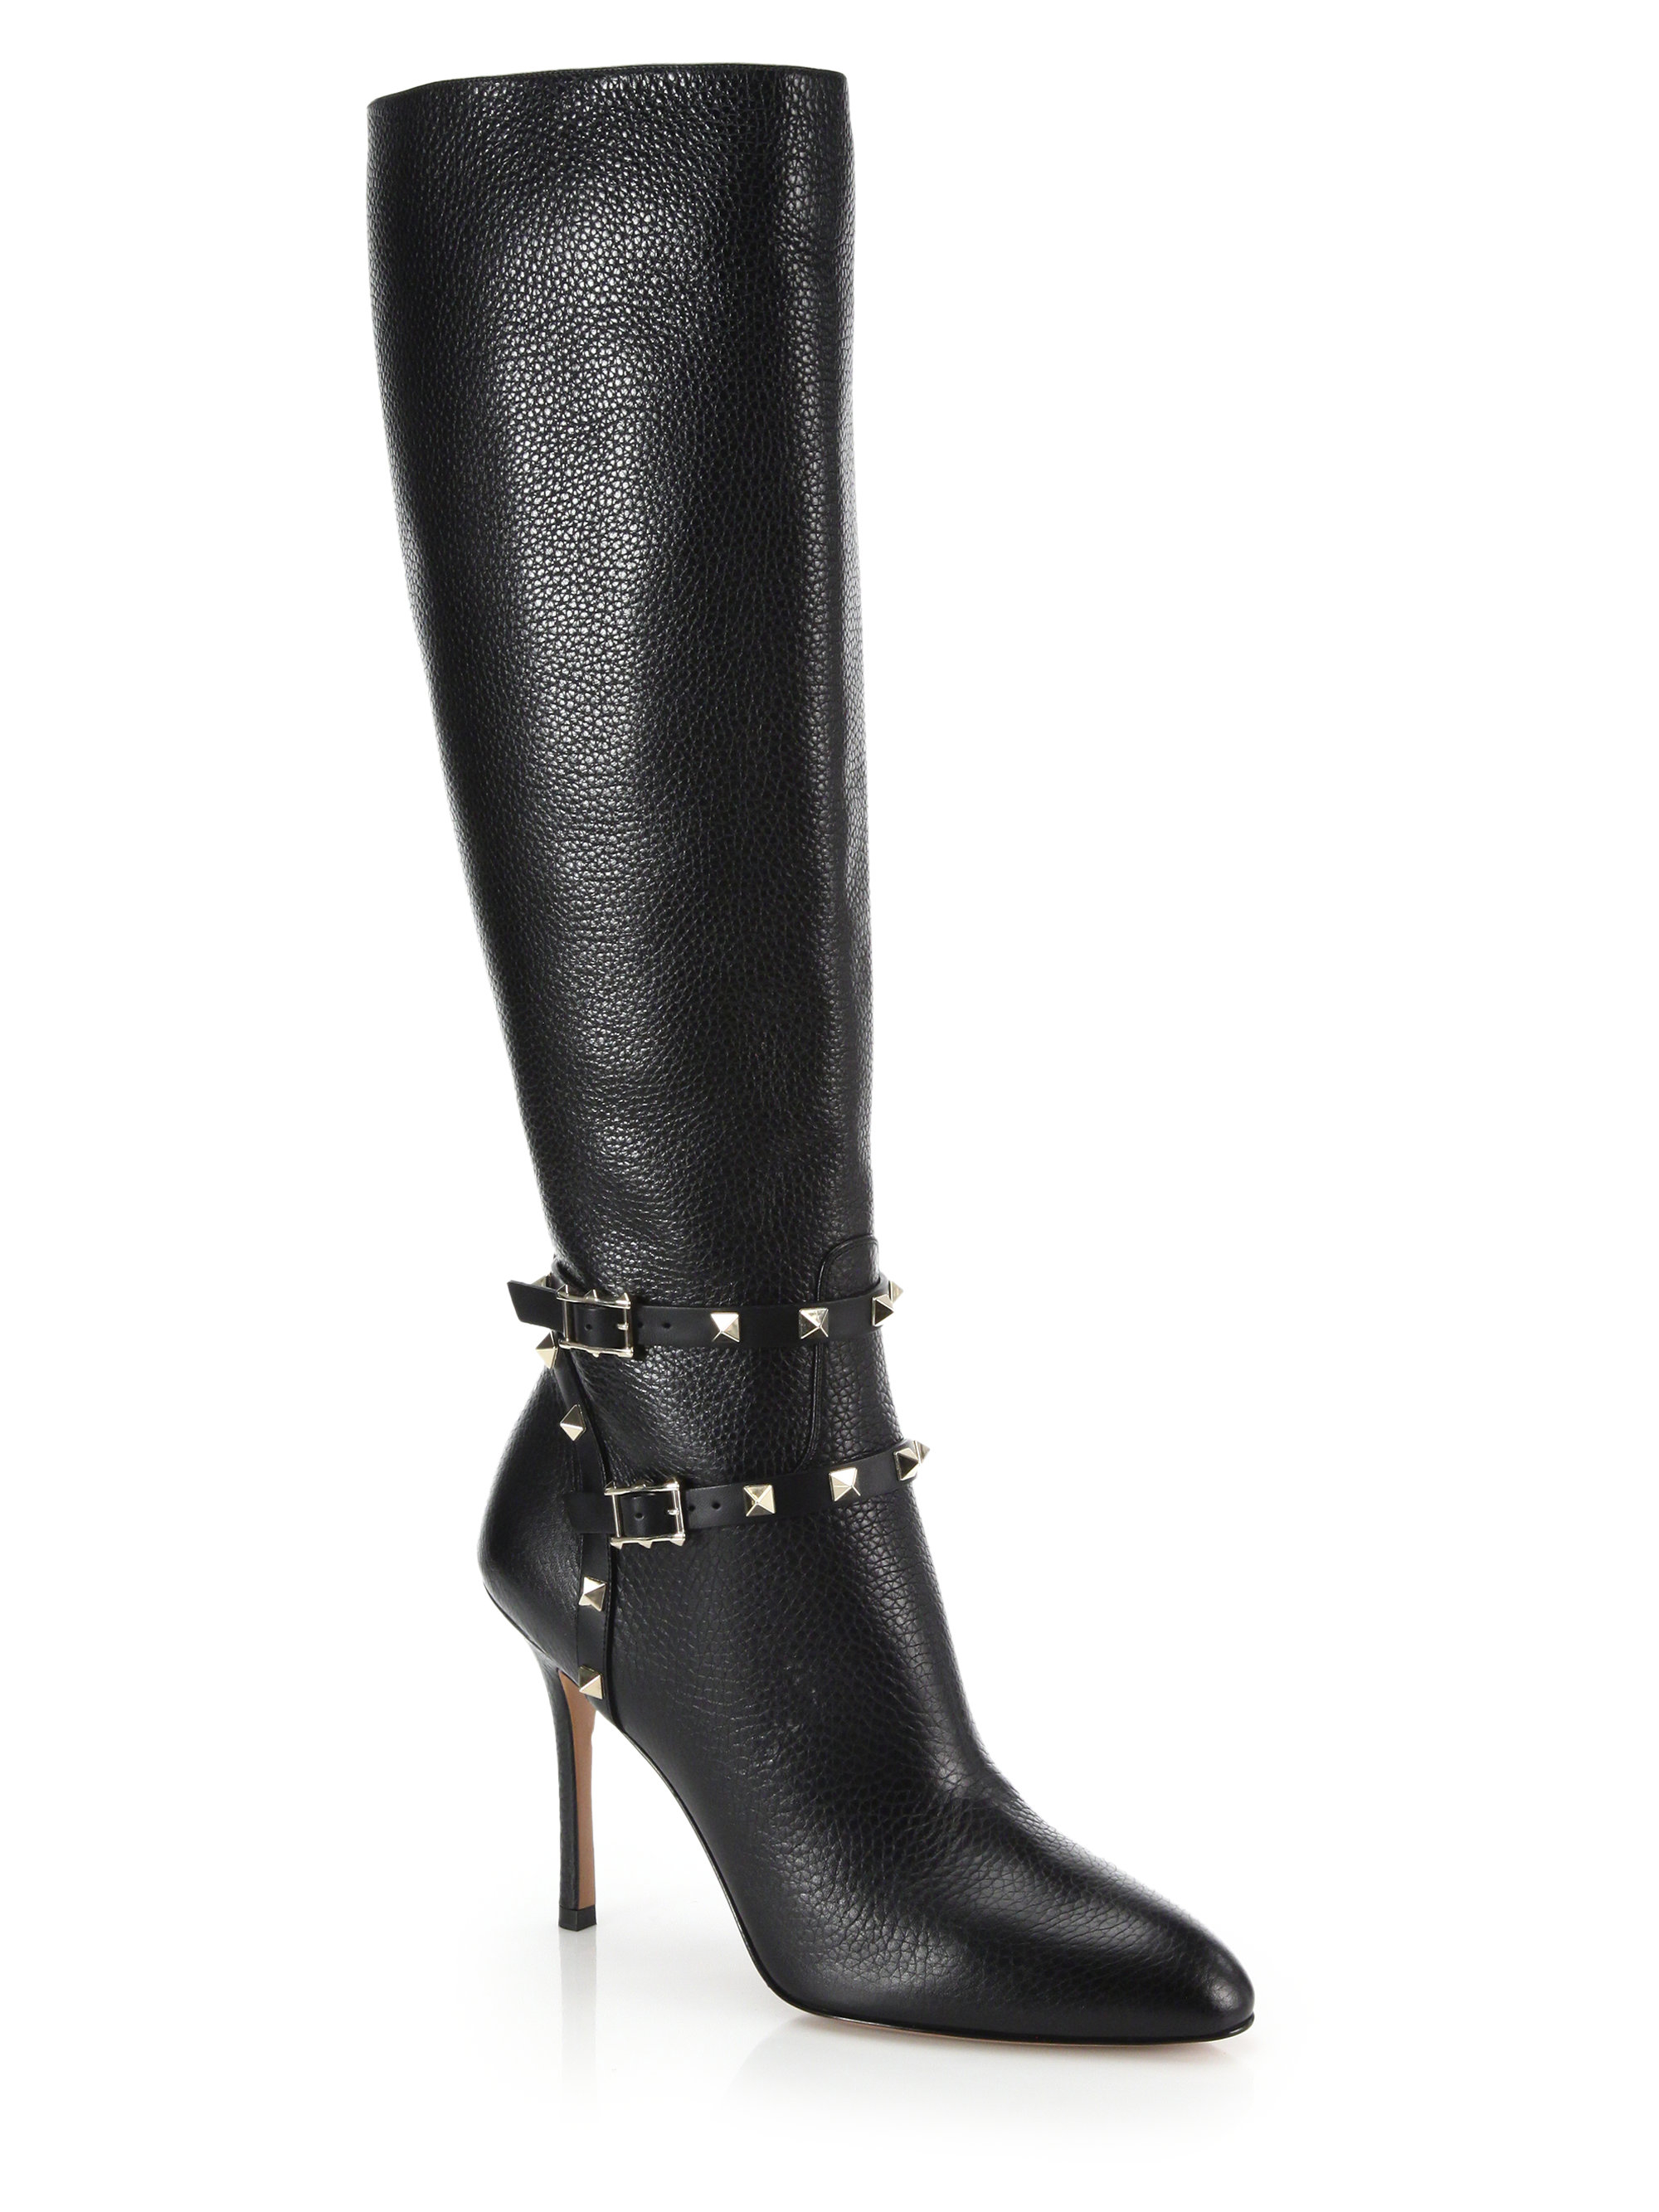 cheap sale websites Valentino Leather Knee-High Boots pre order cheap price cheap sale low price fee shipping geniue stockist for sale qedHzYWmU